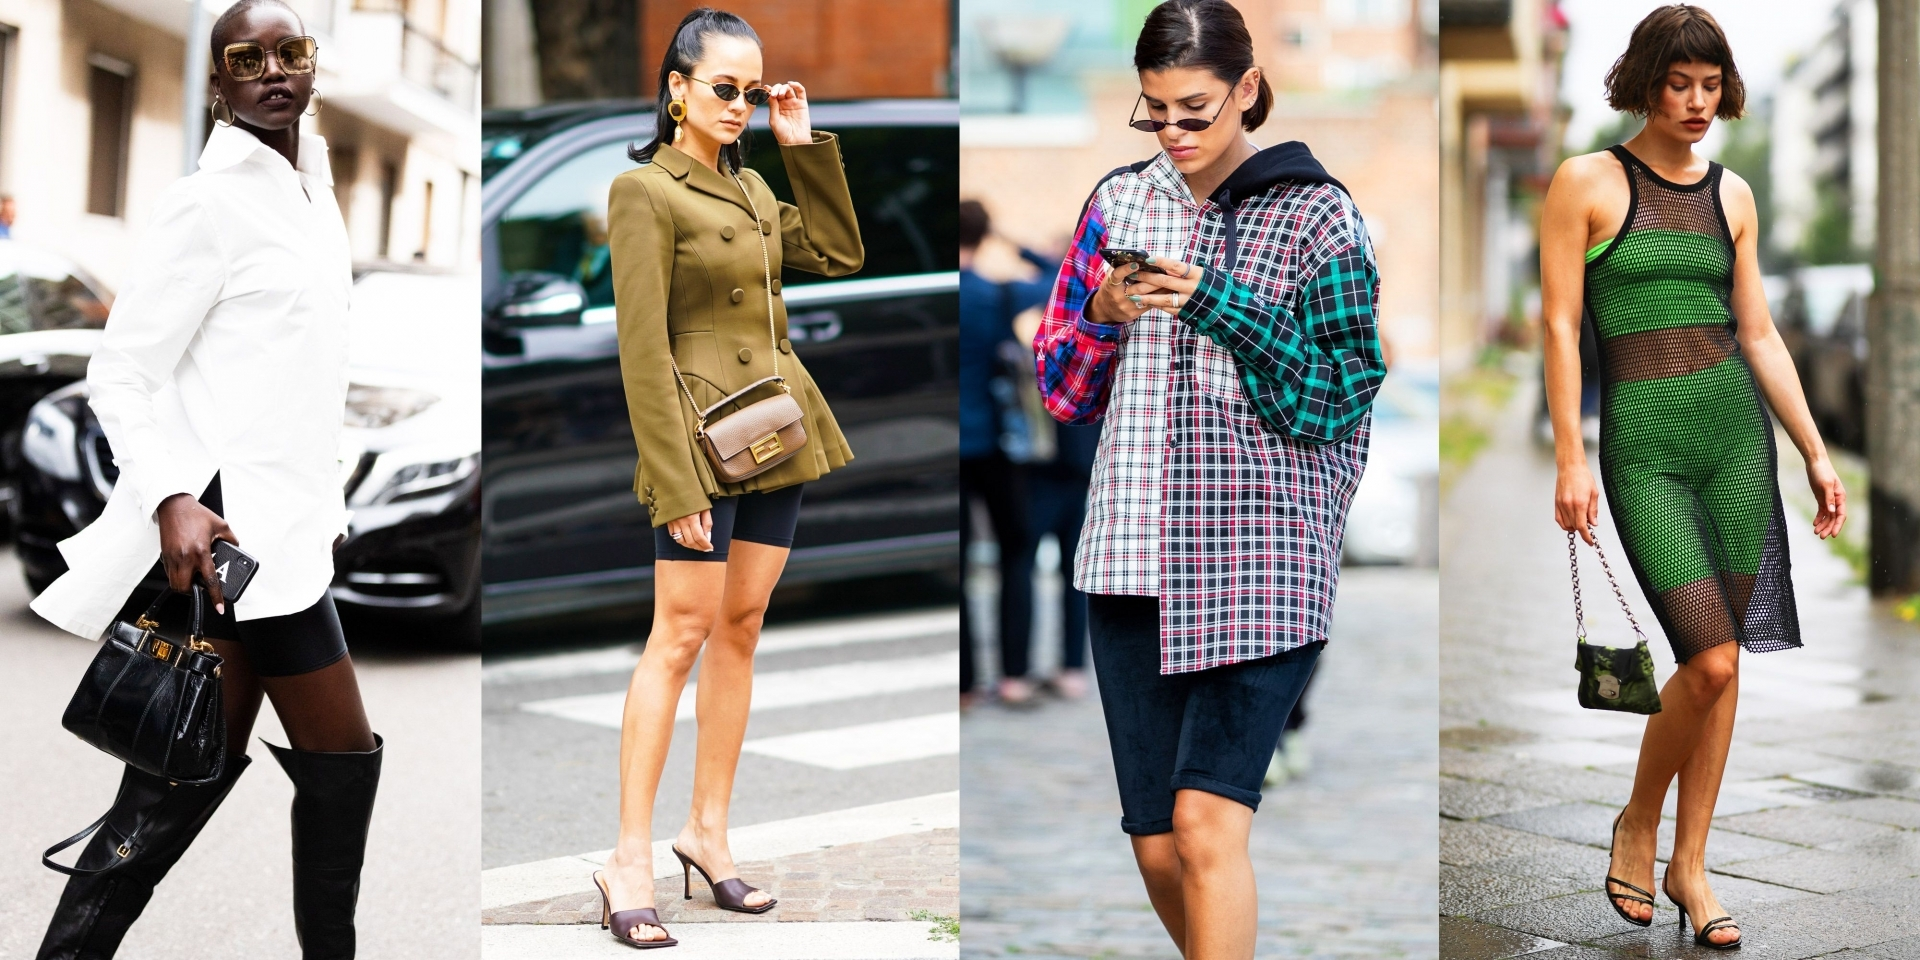 How To Style Biker Shorts 2022